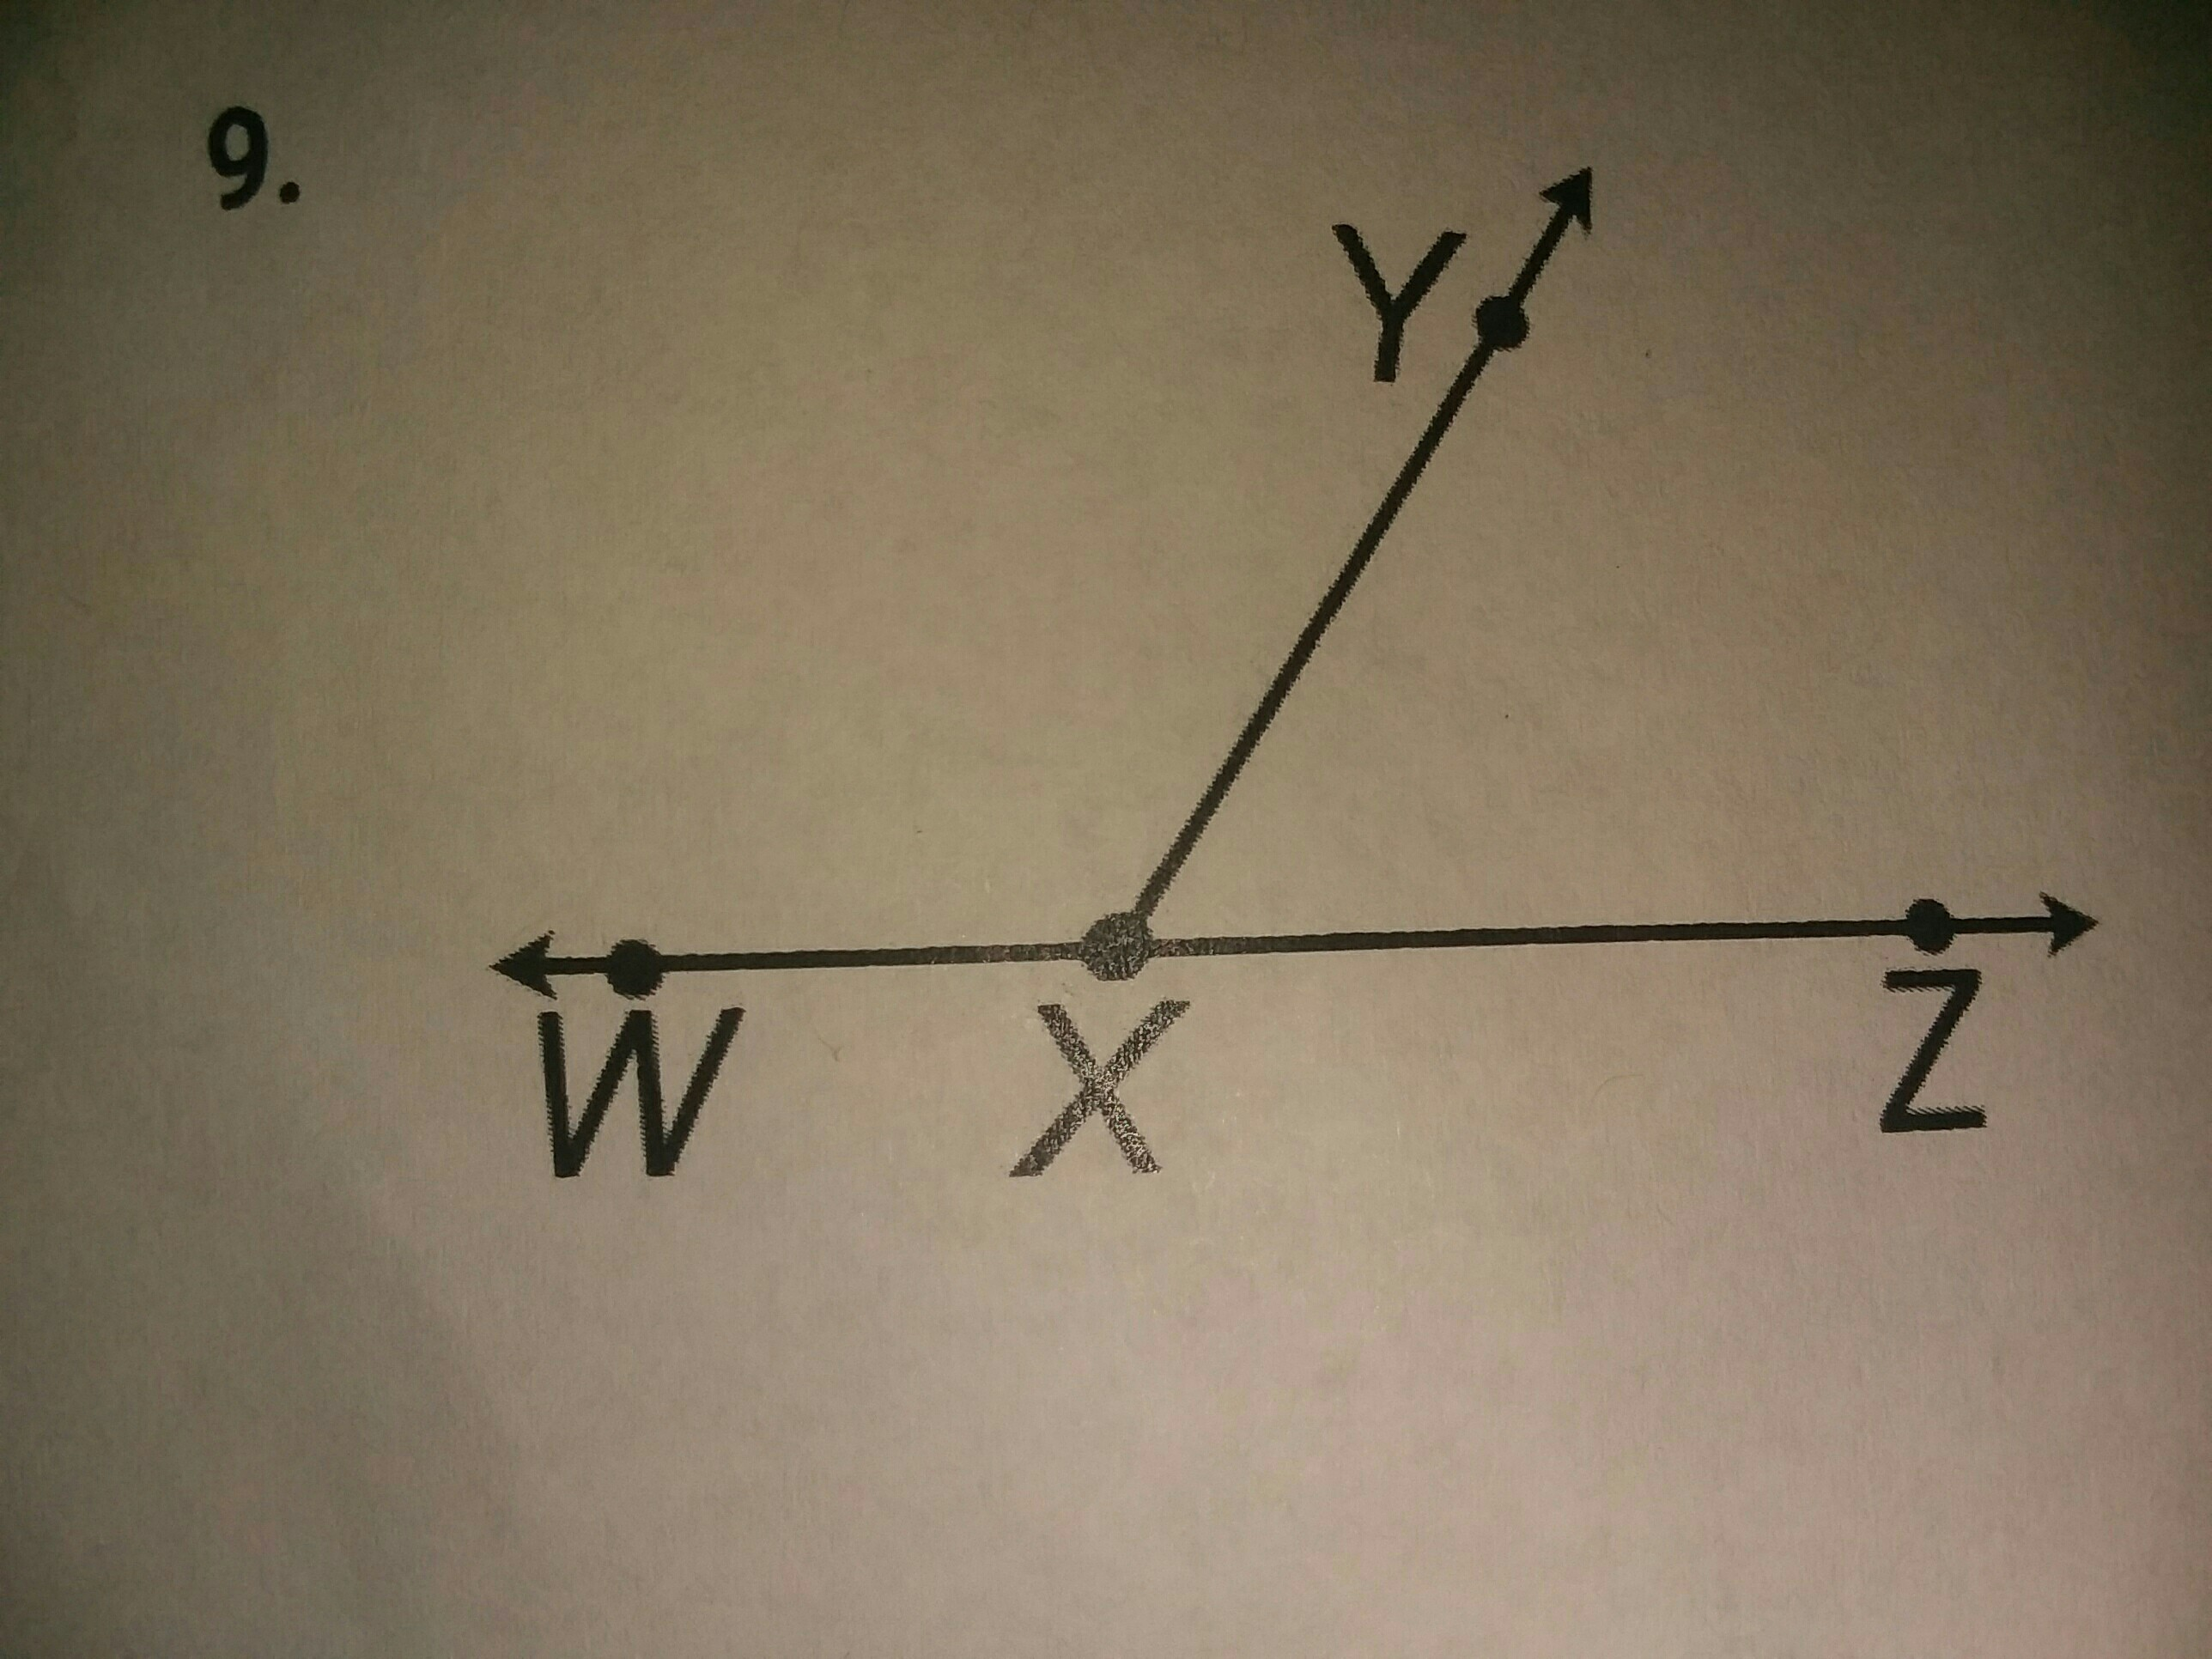 supplementary angles sum up to 180